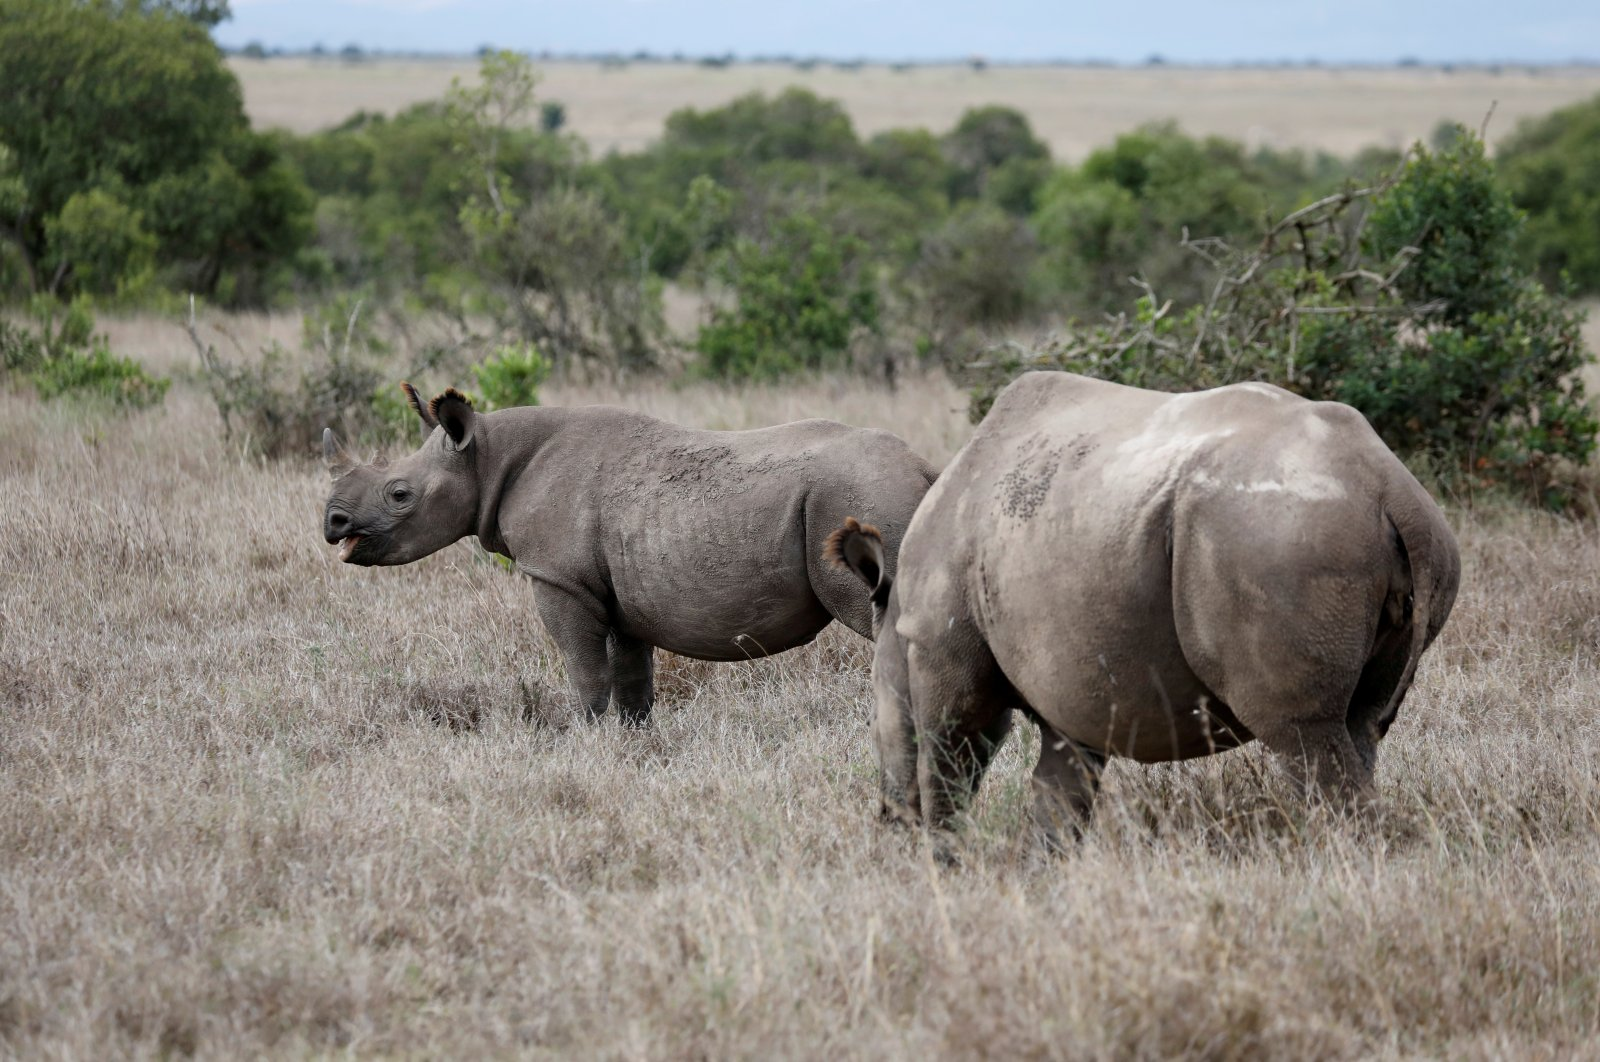 A black rhino calf (L) and its mother are seen at the Ol Pejeta Conservancy in Laikipia national park near Nanyuki, Kenya, May 22, 2019. (Reuters Photo)